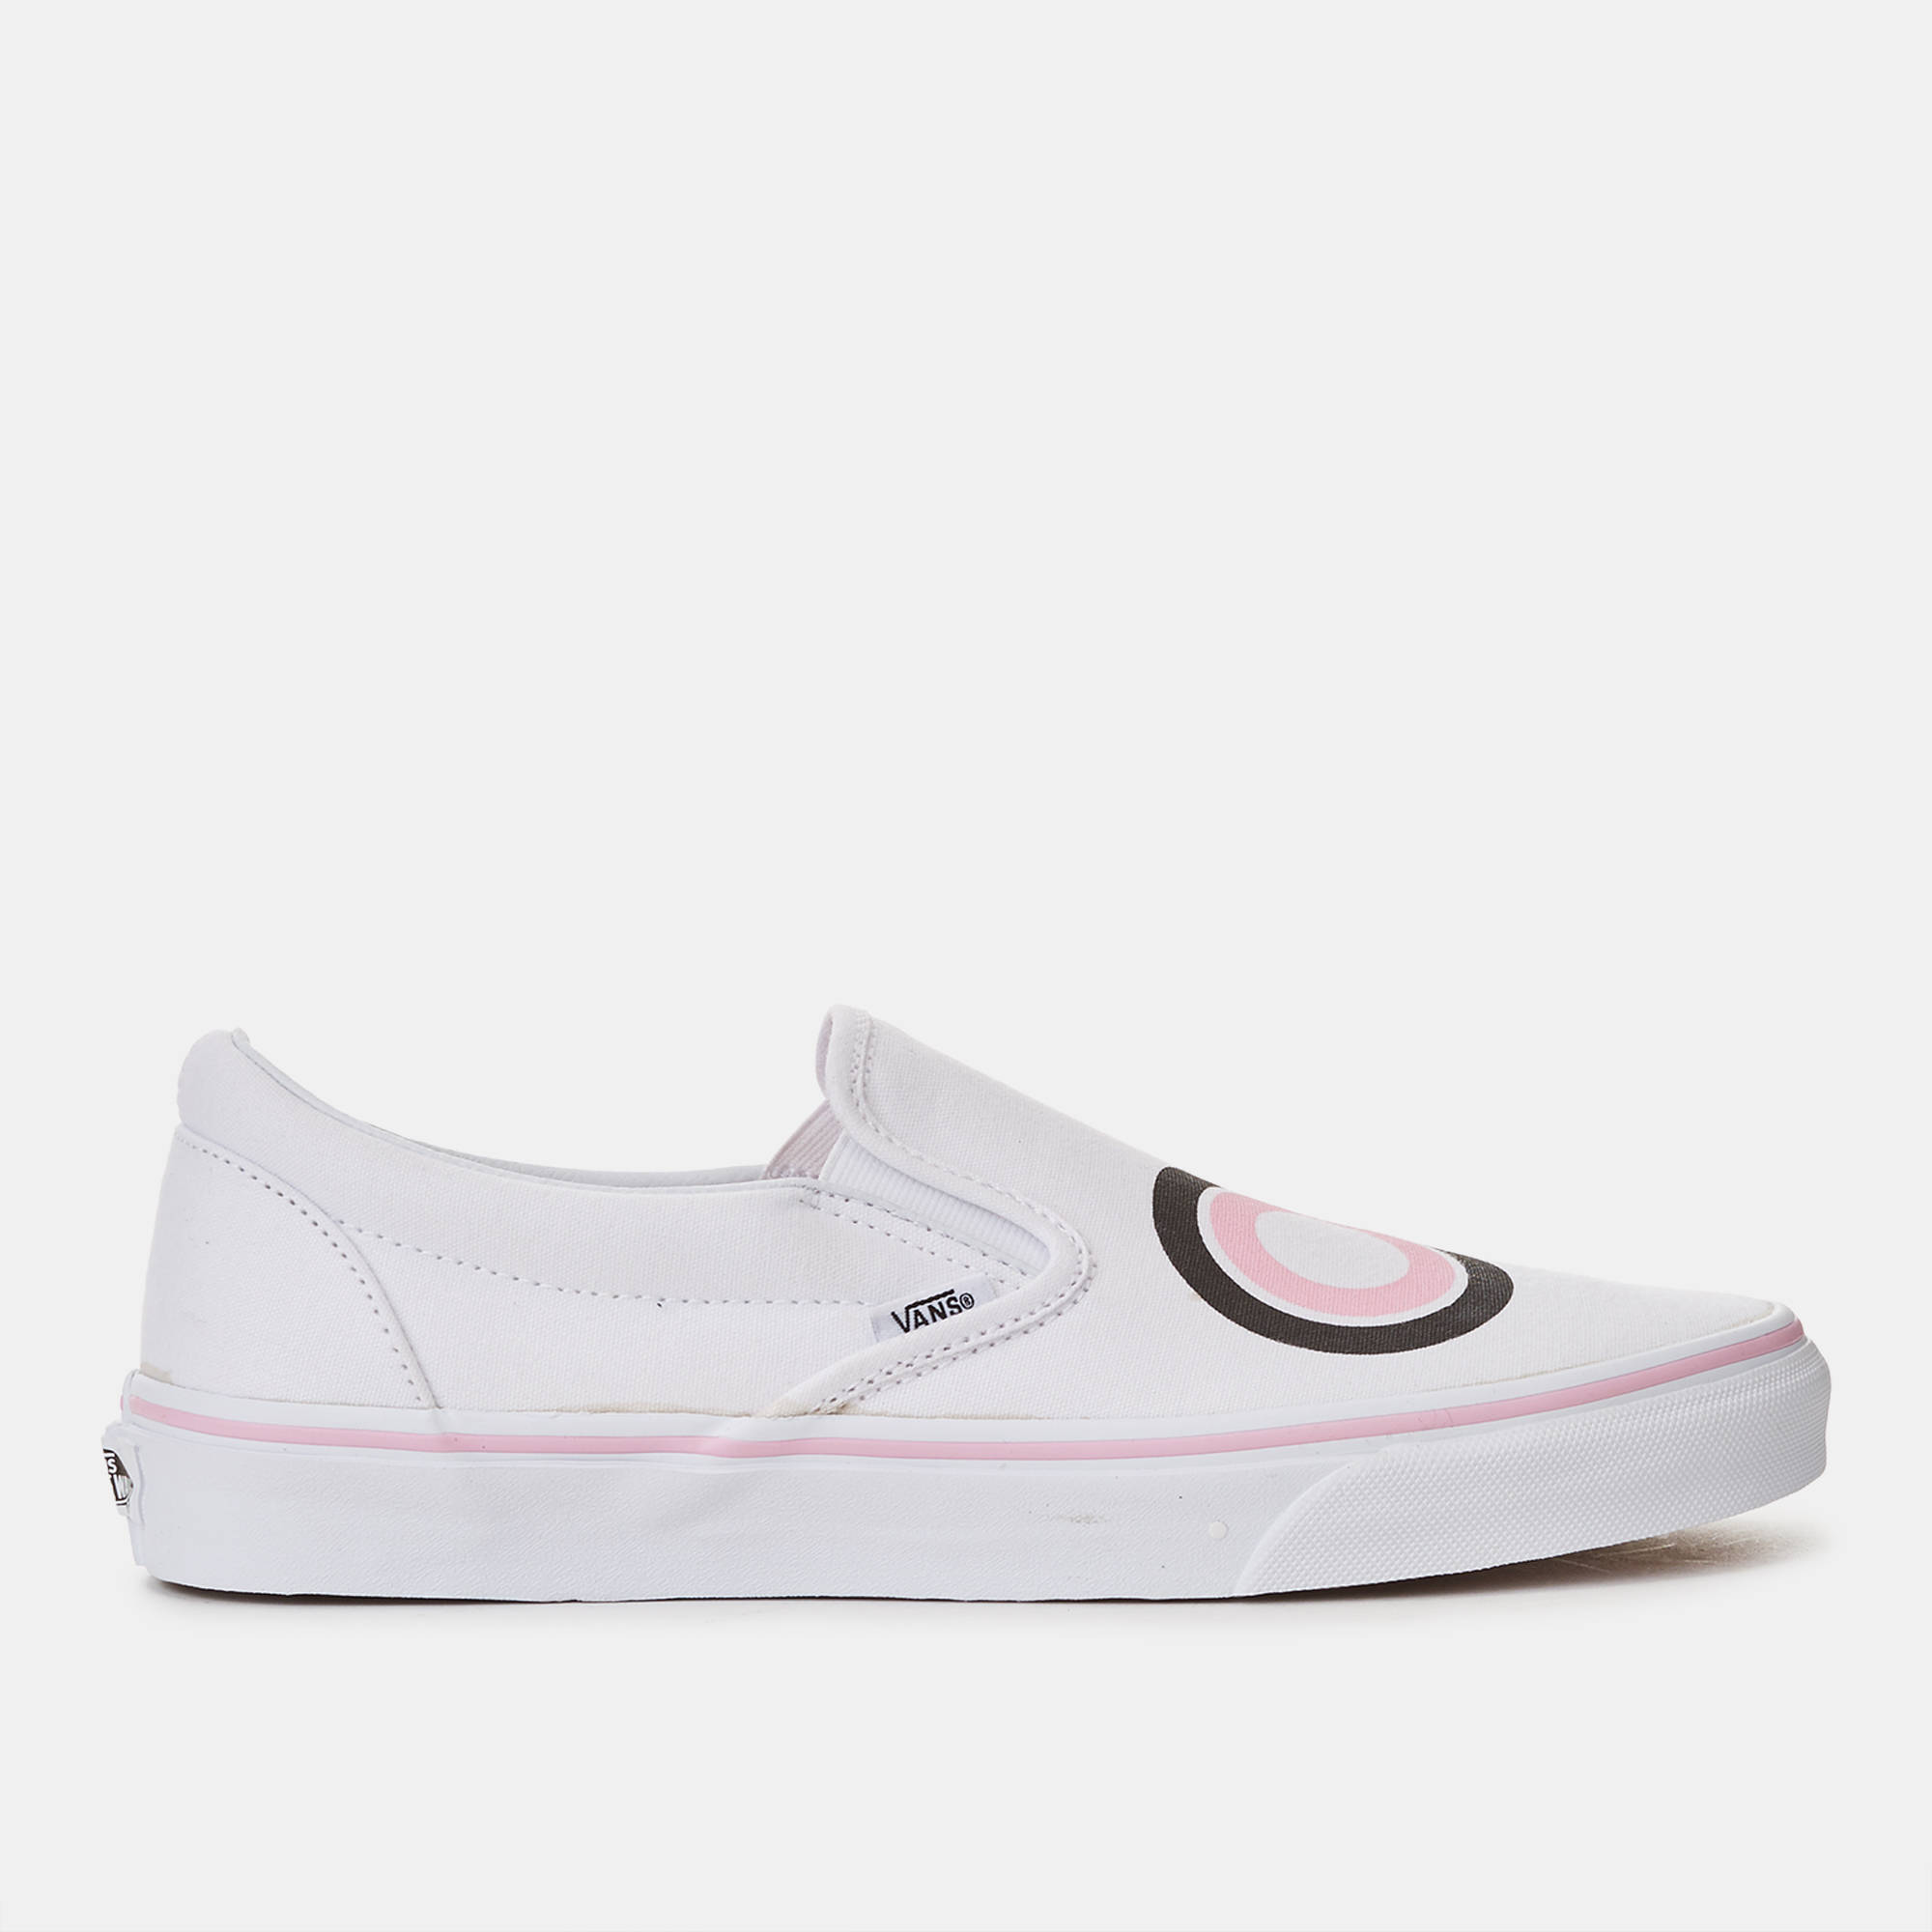 Womens Vans Slip Ons | Flamingo Vans Shoes | White Van Slip Ons